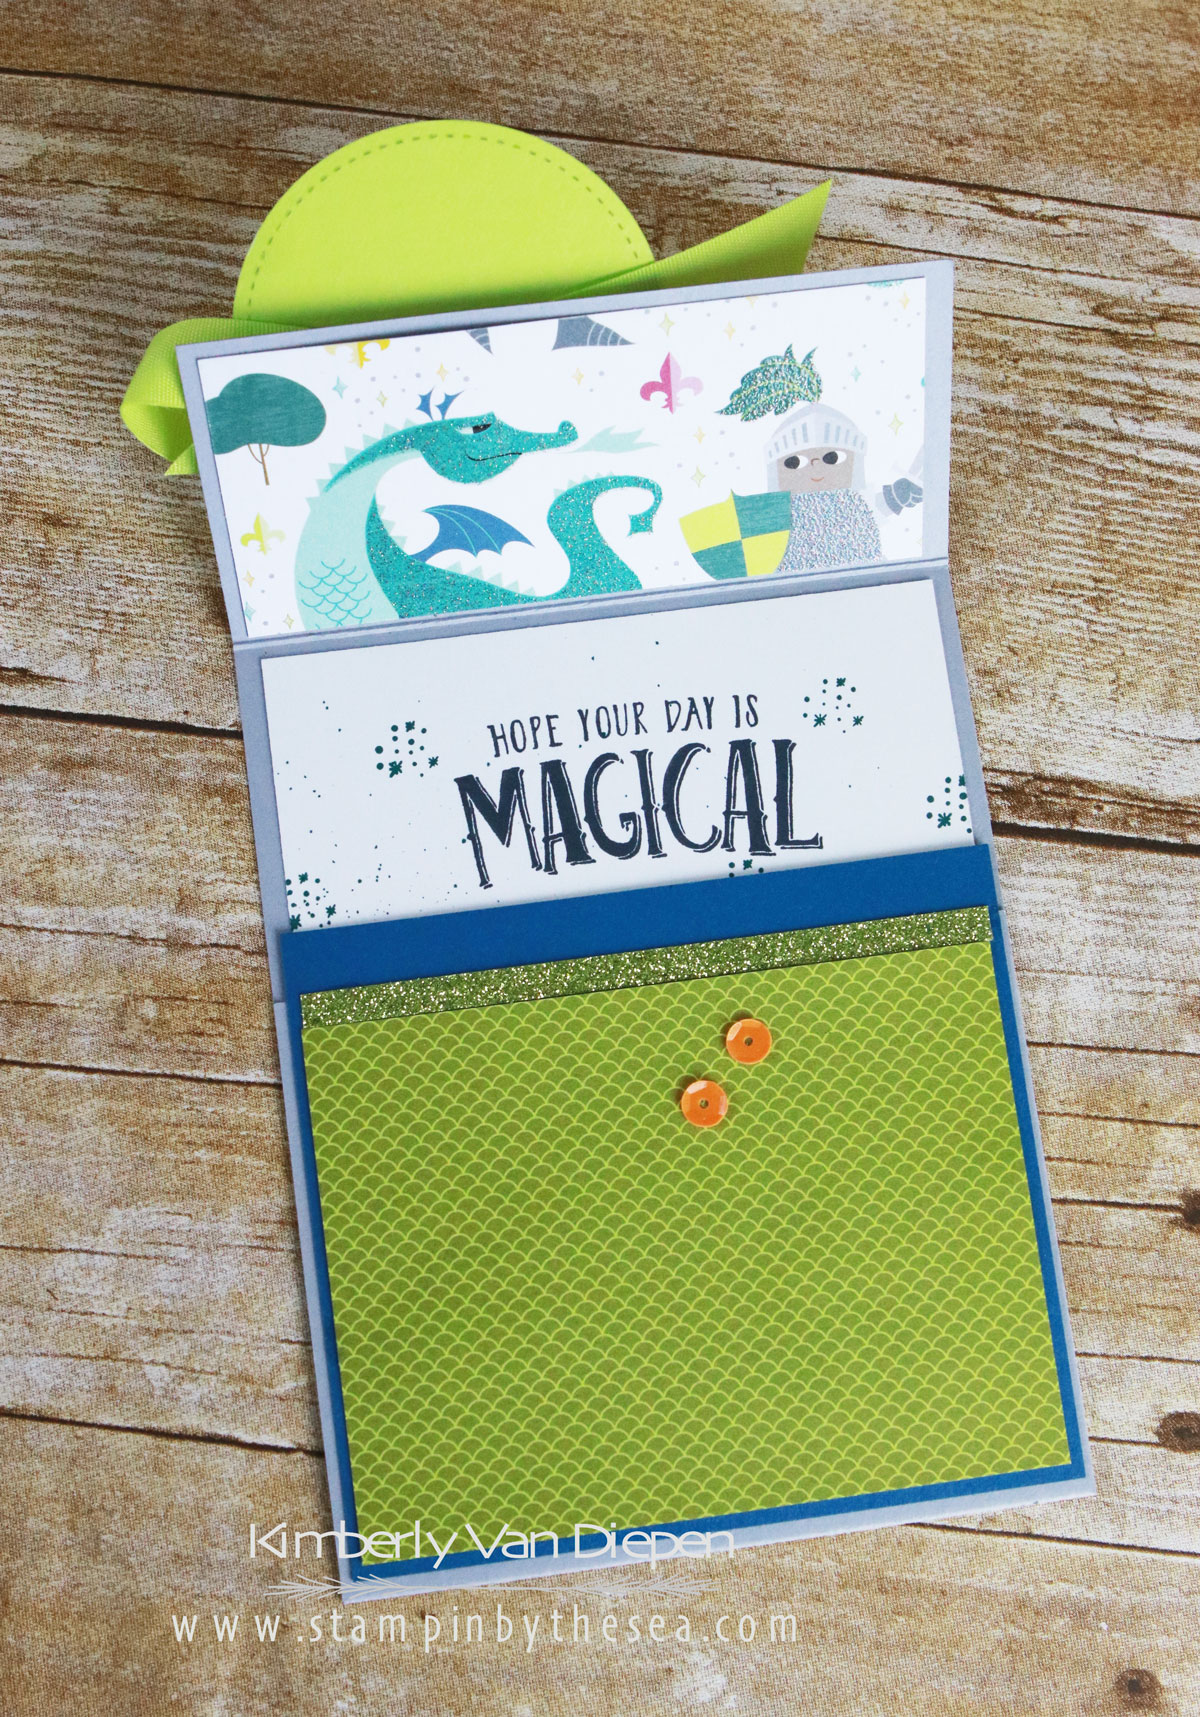 April Tutorial, Stampin' Up!